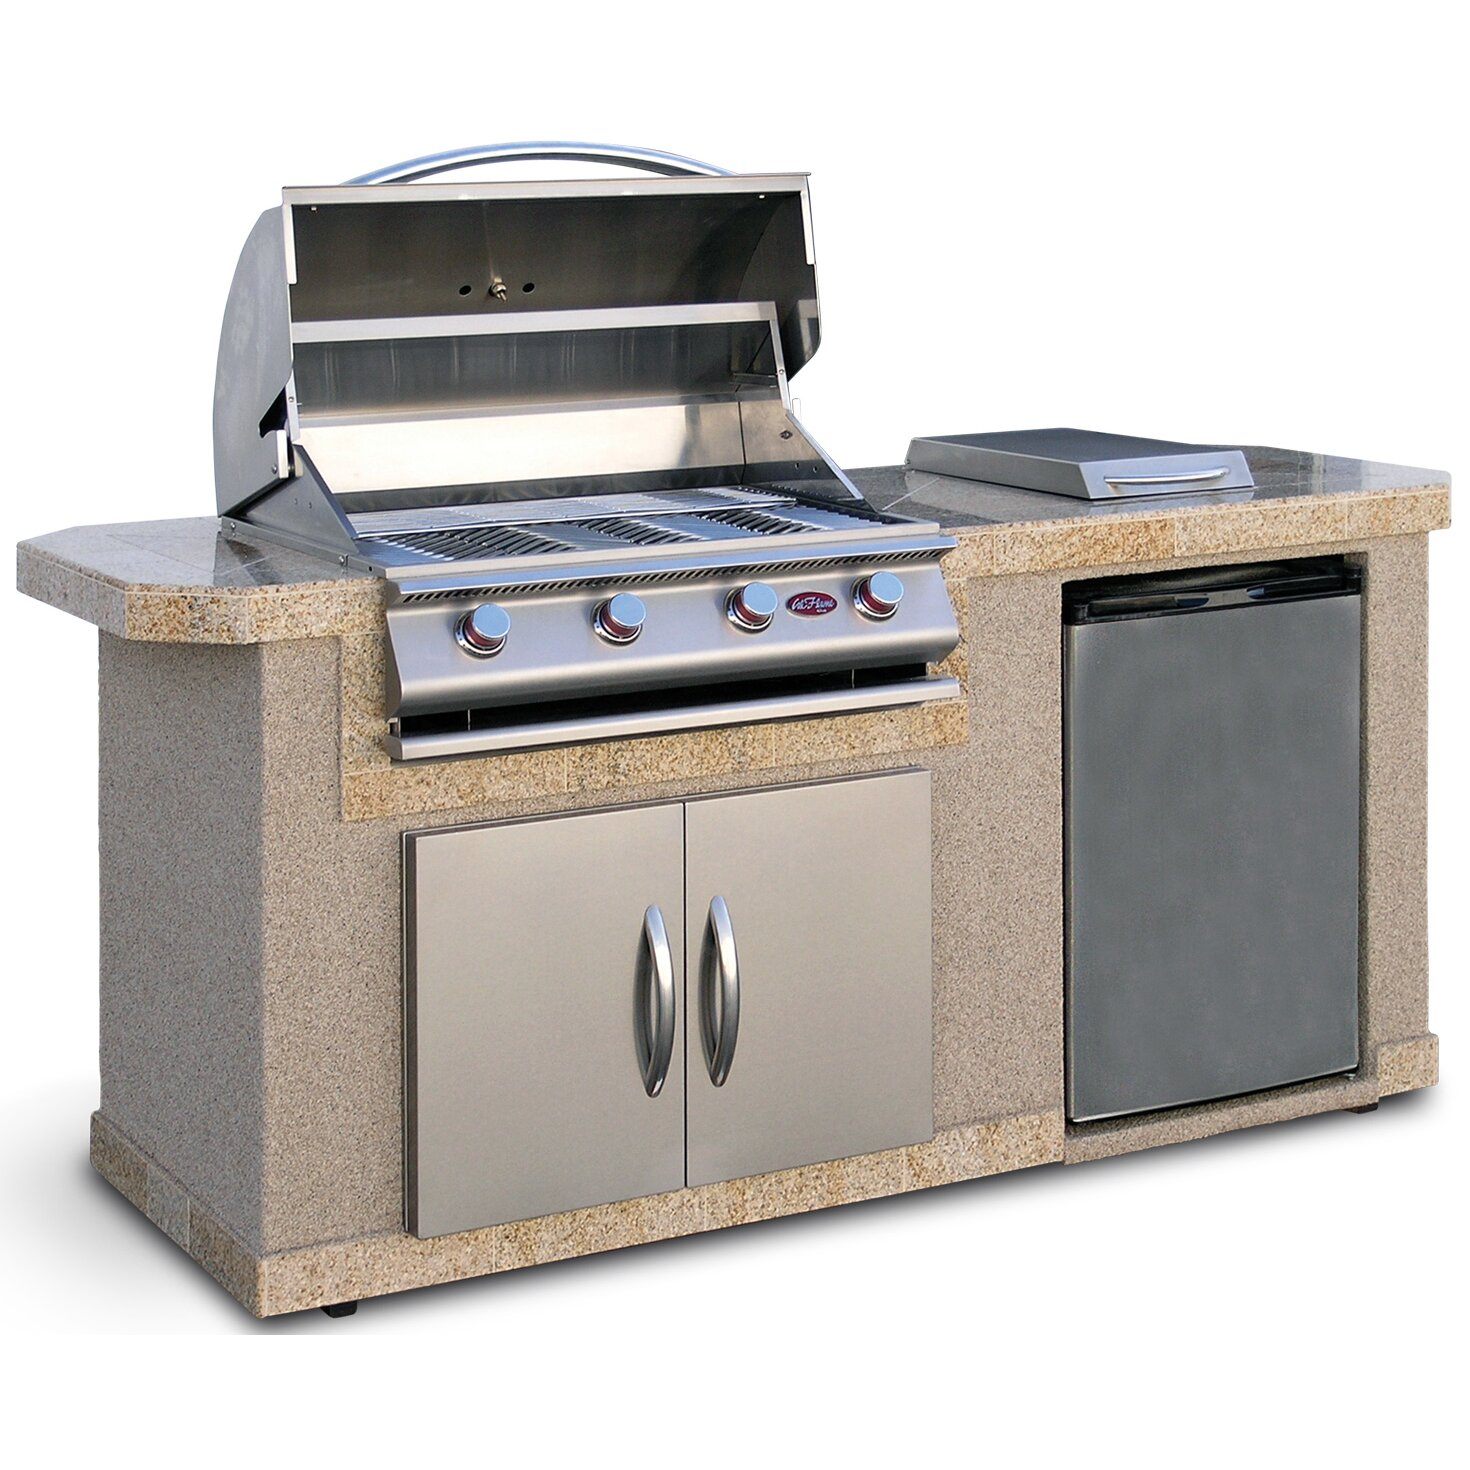 CalFlame 84 Outdoor Kitchen Islands 4 Burner Liquid Propane Gas Grill